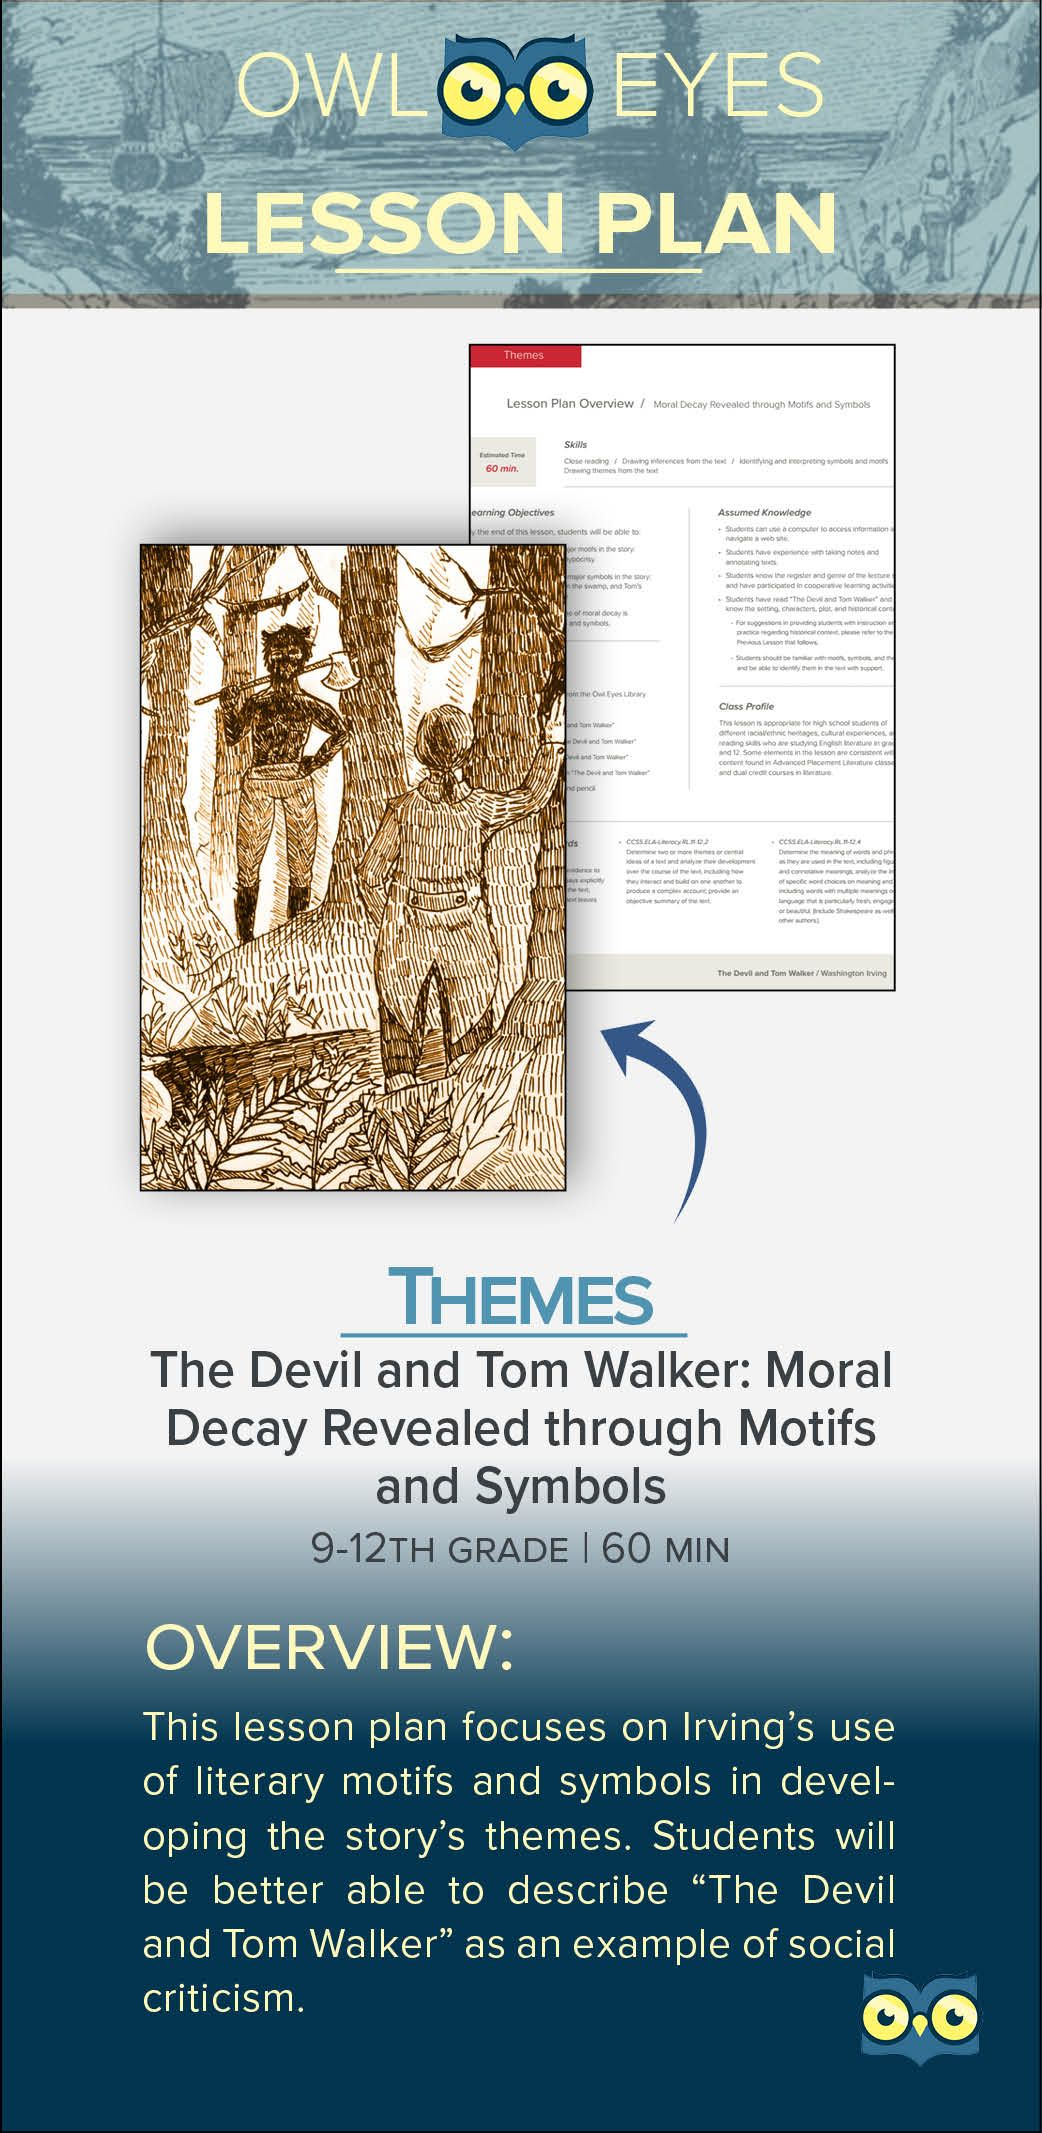 The Devil And Tom Walker Moral Decay Revealed Through Motifs And